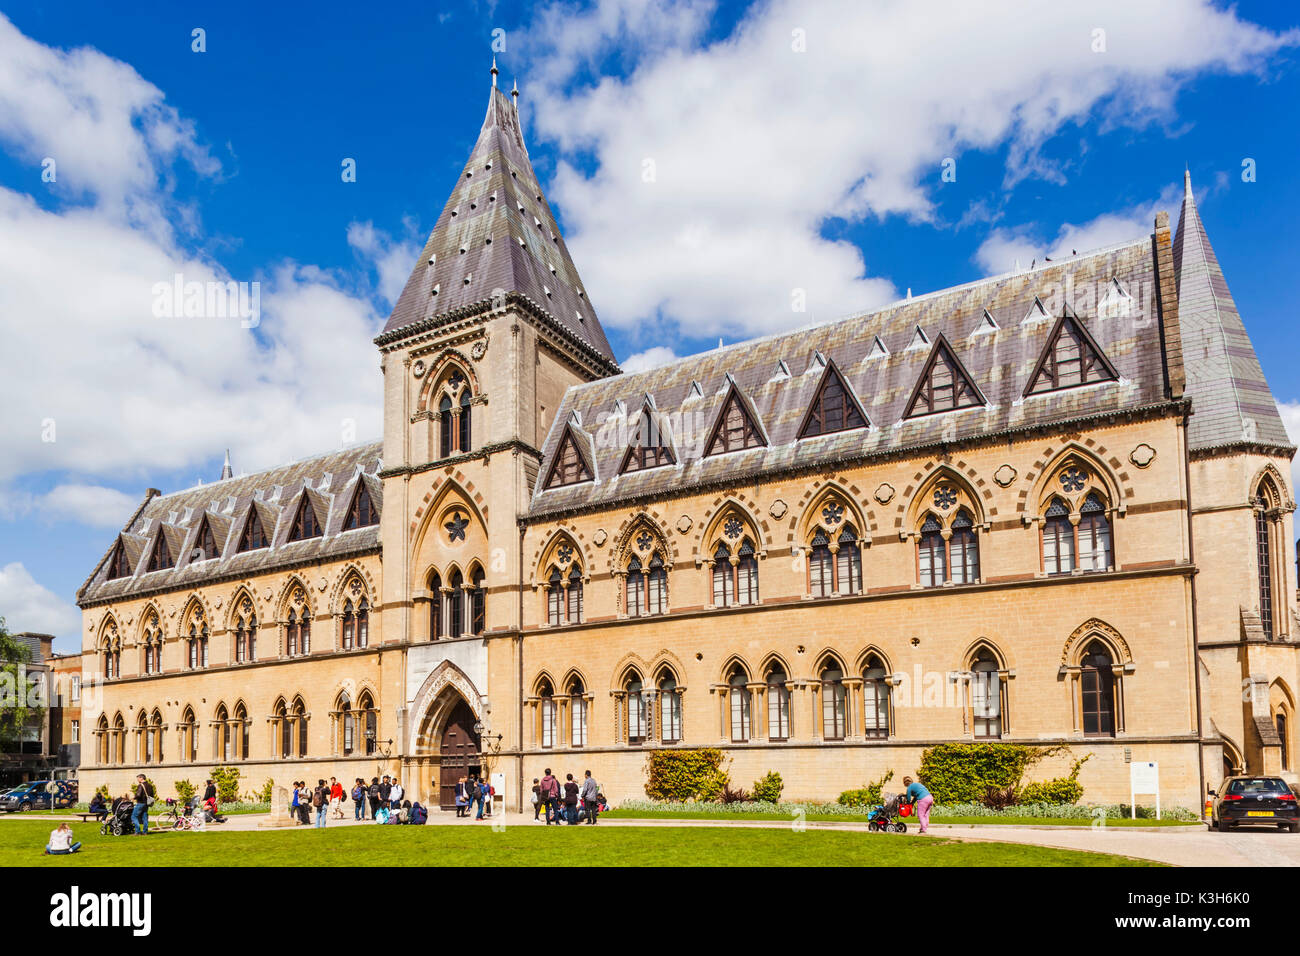 a history of the university of oxford in oxford england This is 'the oxford history of britain' of the excellent single-author histories of england, mackie's history of oxford history, oxford university press.